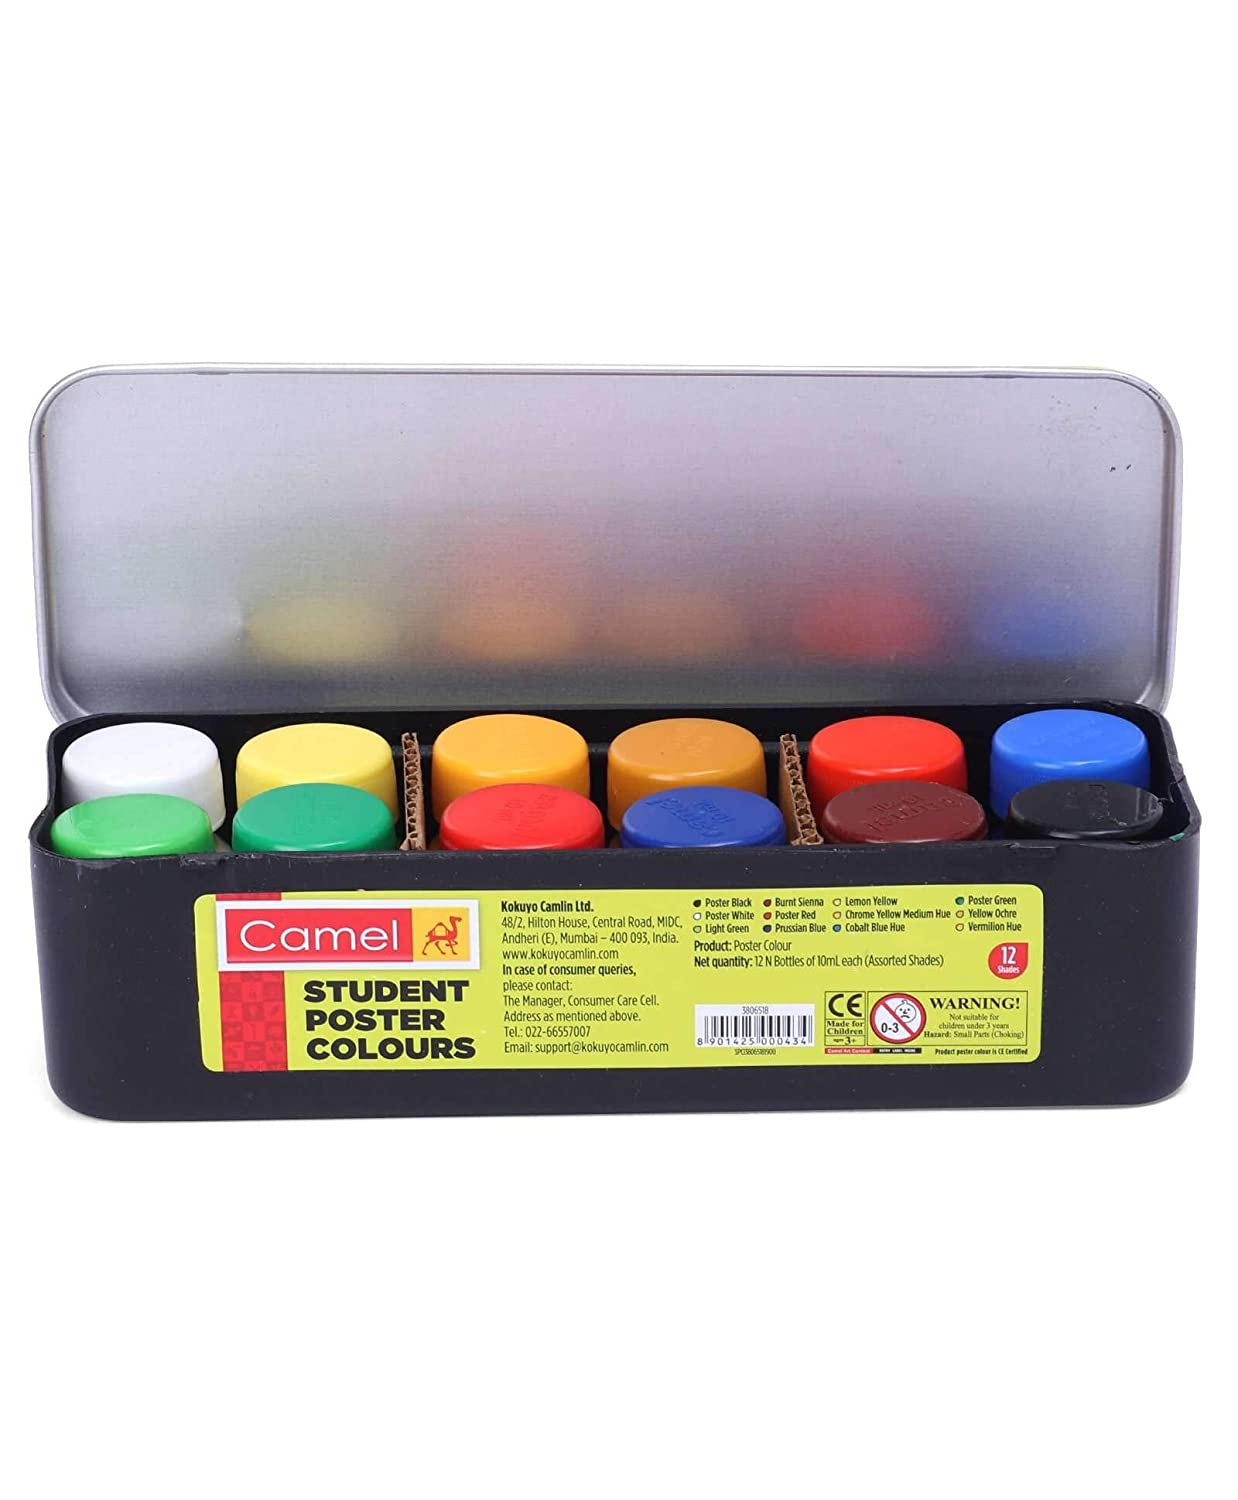 Camel Student Poster Color - 10ml each, 12 Shades